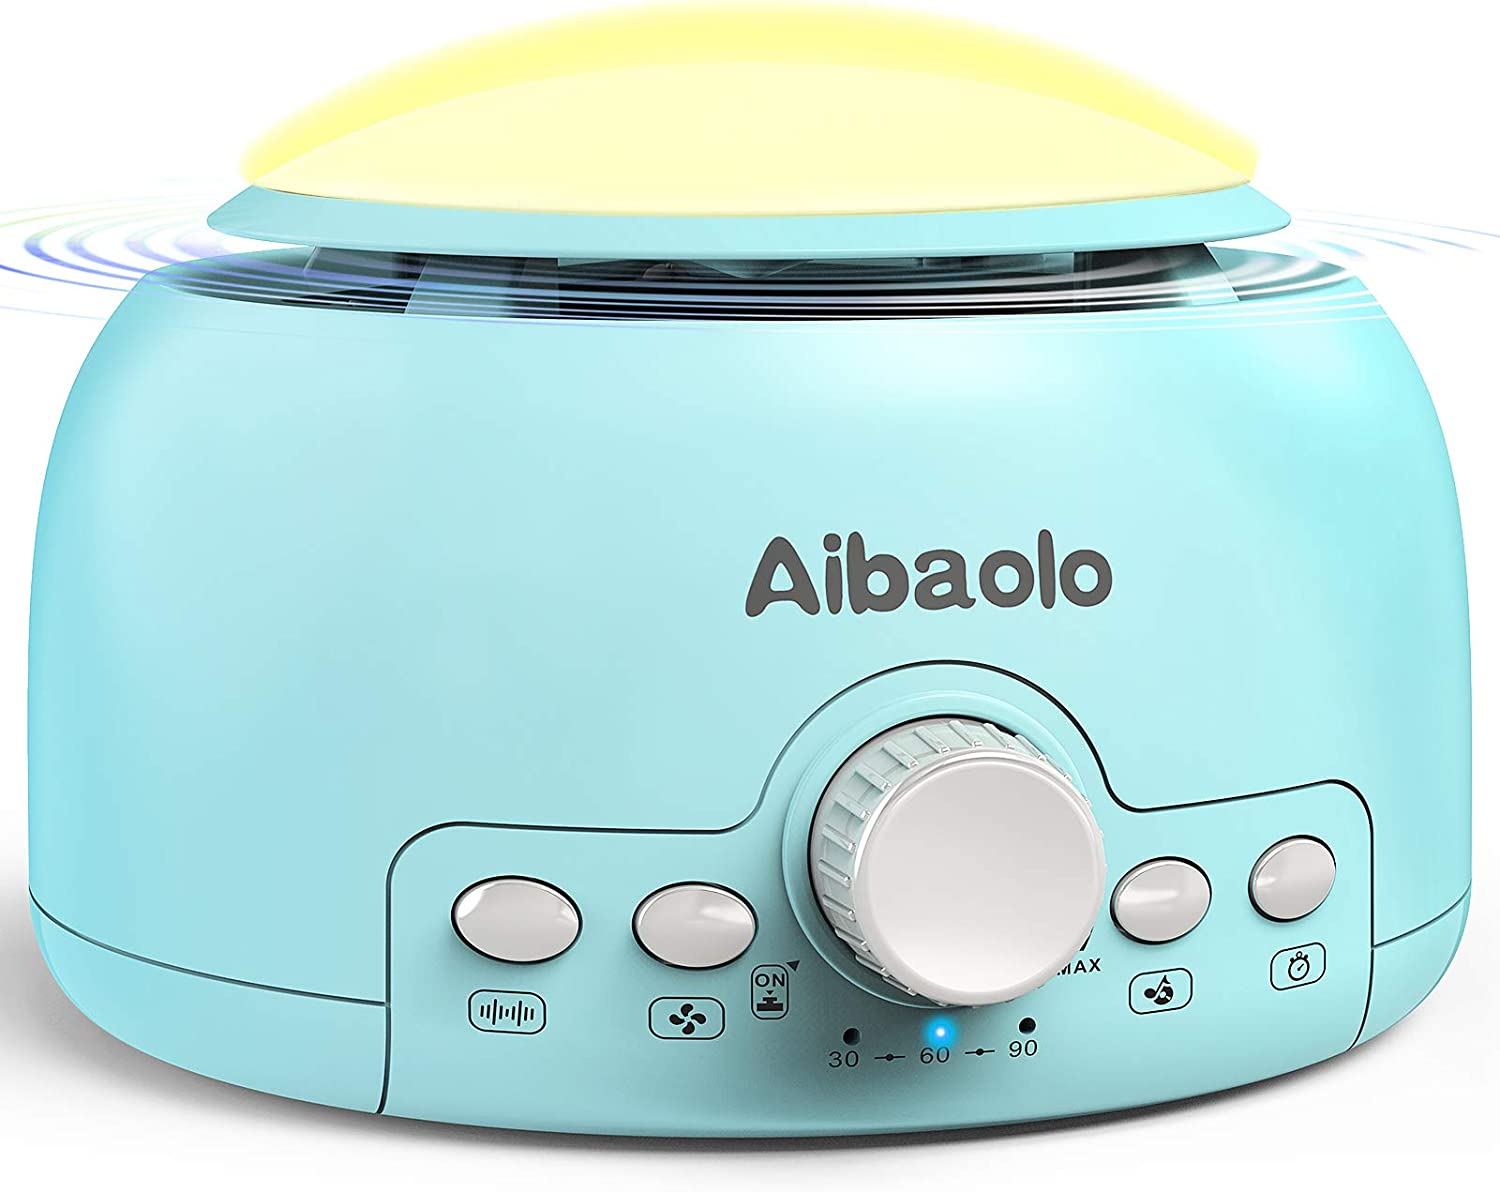 Aibaolo White Noise Machine, Sleep Sound Machine for Baby Kids Adults, 24 Natural Sounds Therapy, Night Light, Timer&Memory Function, Portable Sound Machine for Nursery Home Office Travel (Blue)